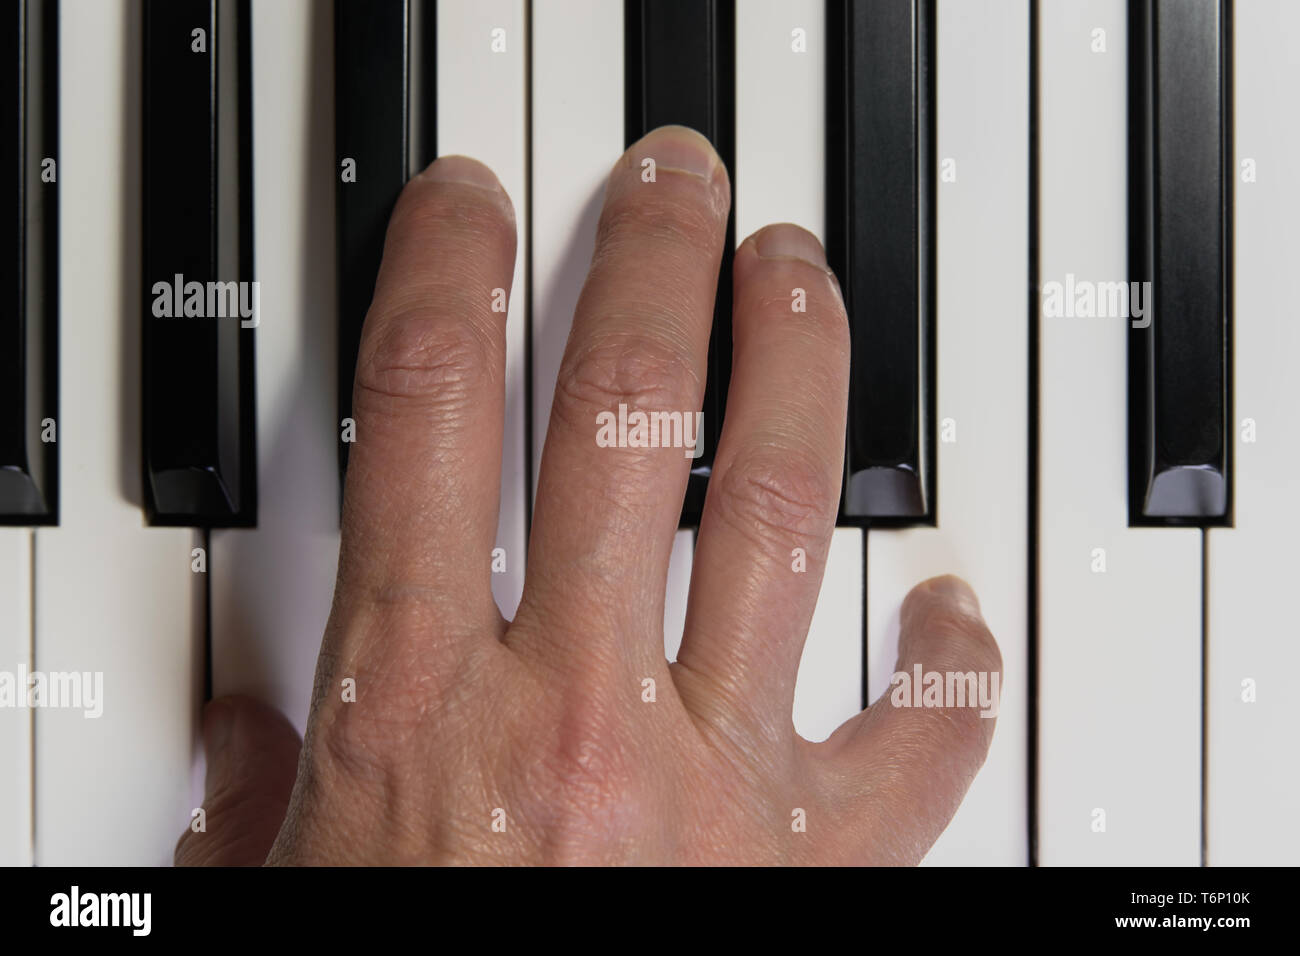 Top View of Piano Keyboard and Hand. Playing Piano. Close Up, Music Instrument, Concept - Stock Image